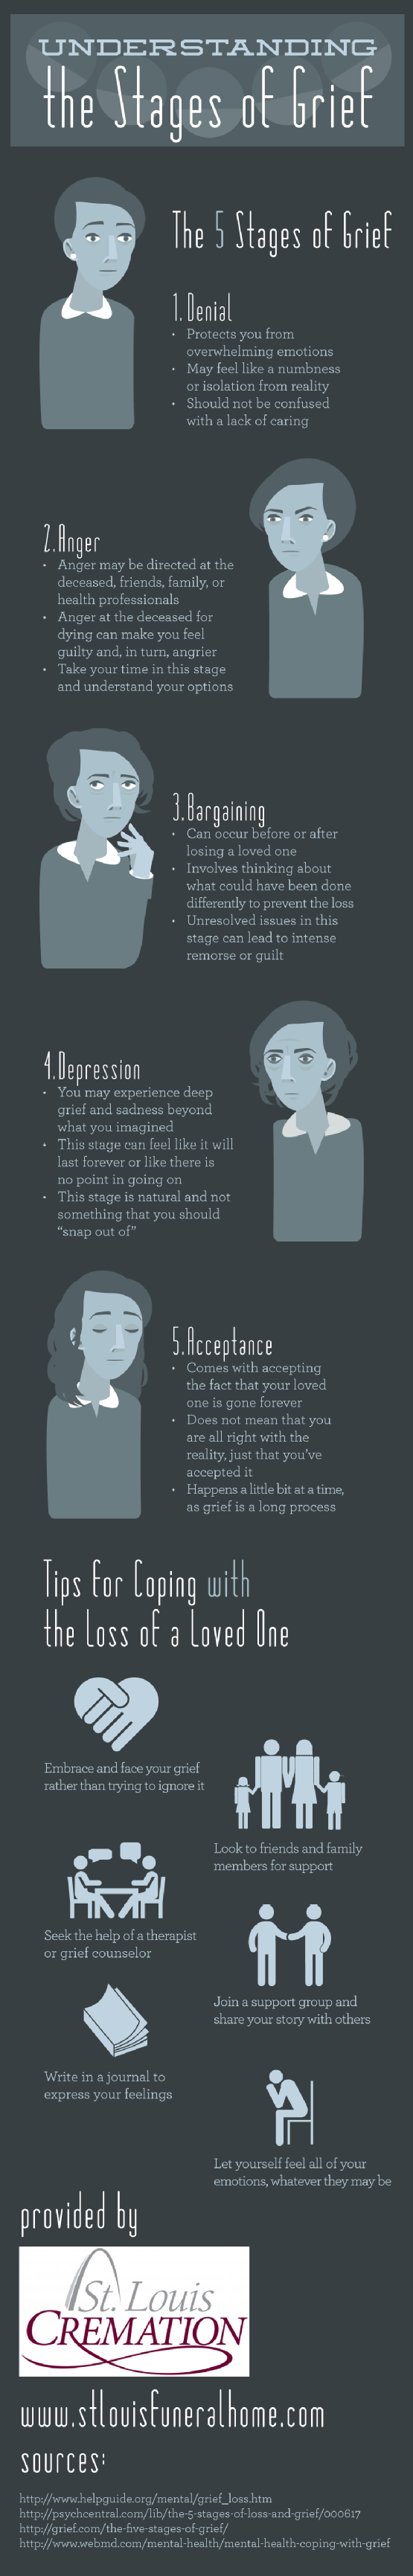 Infographic: Understanding The Stages Of Grief